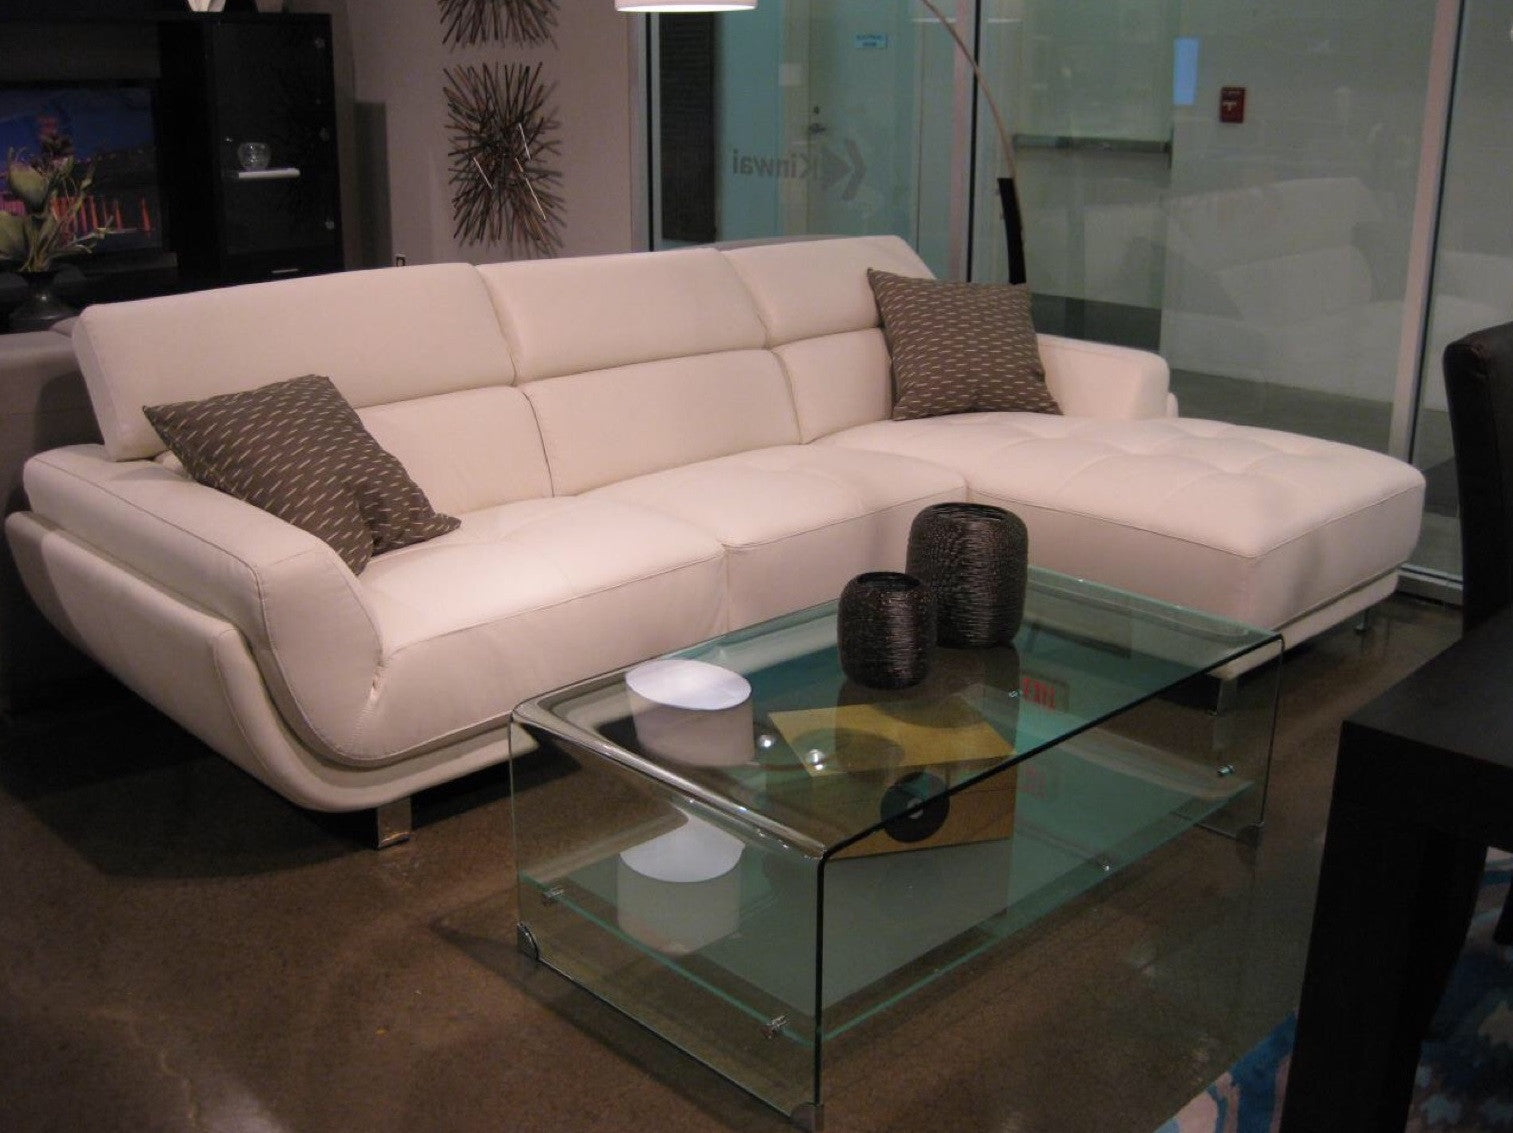 Dorris White Leather Sectional Sofa W/ Chaise